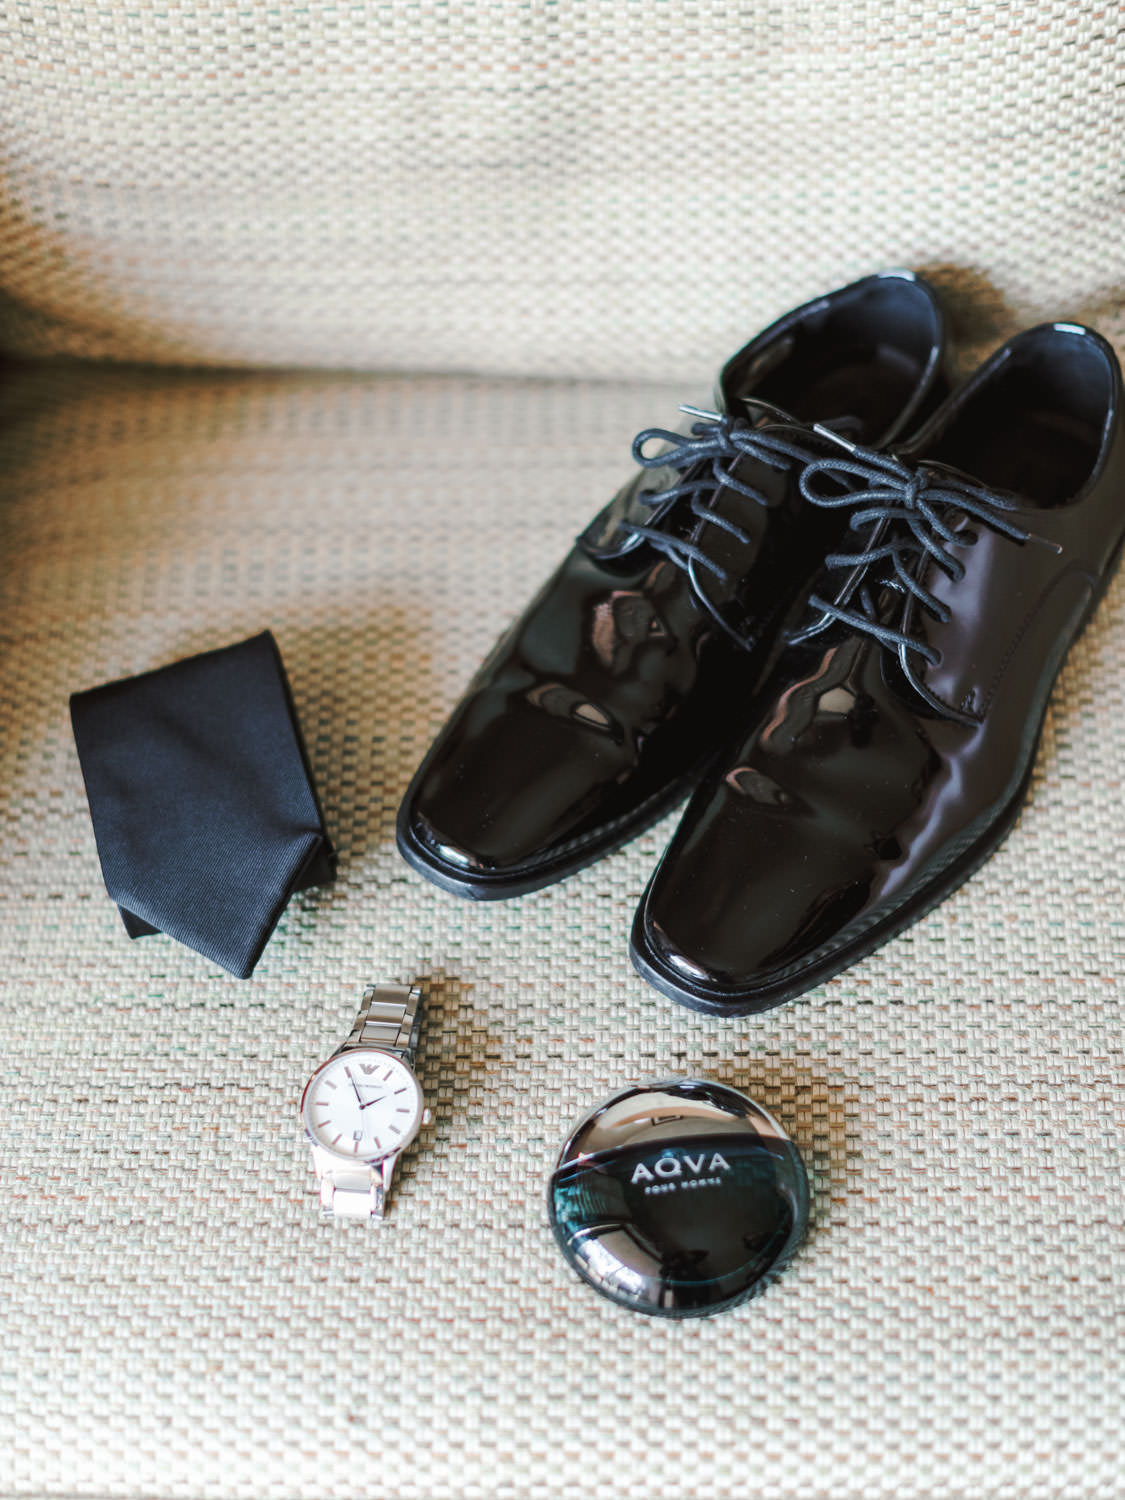 Groom black shoes, tie, watch, and cologne. Cavin Elizabeth Photography